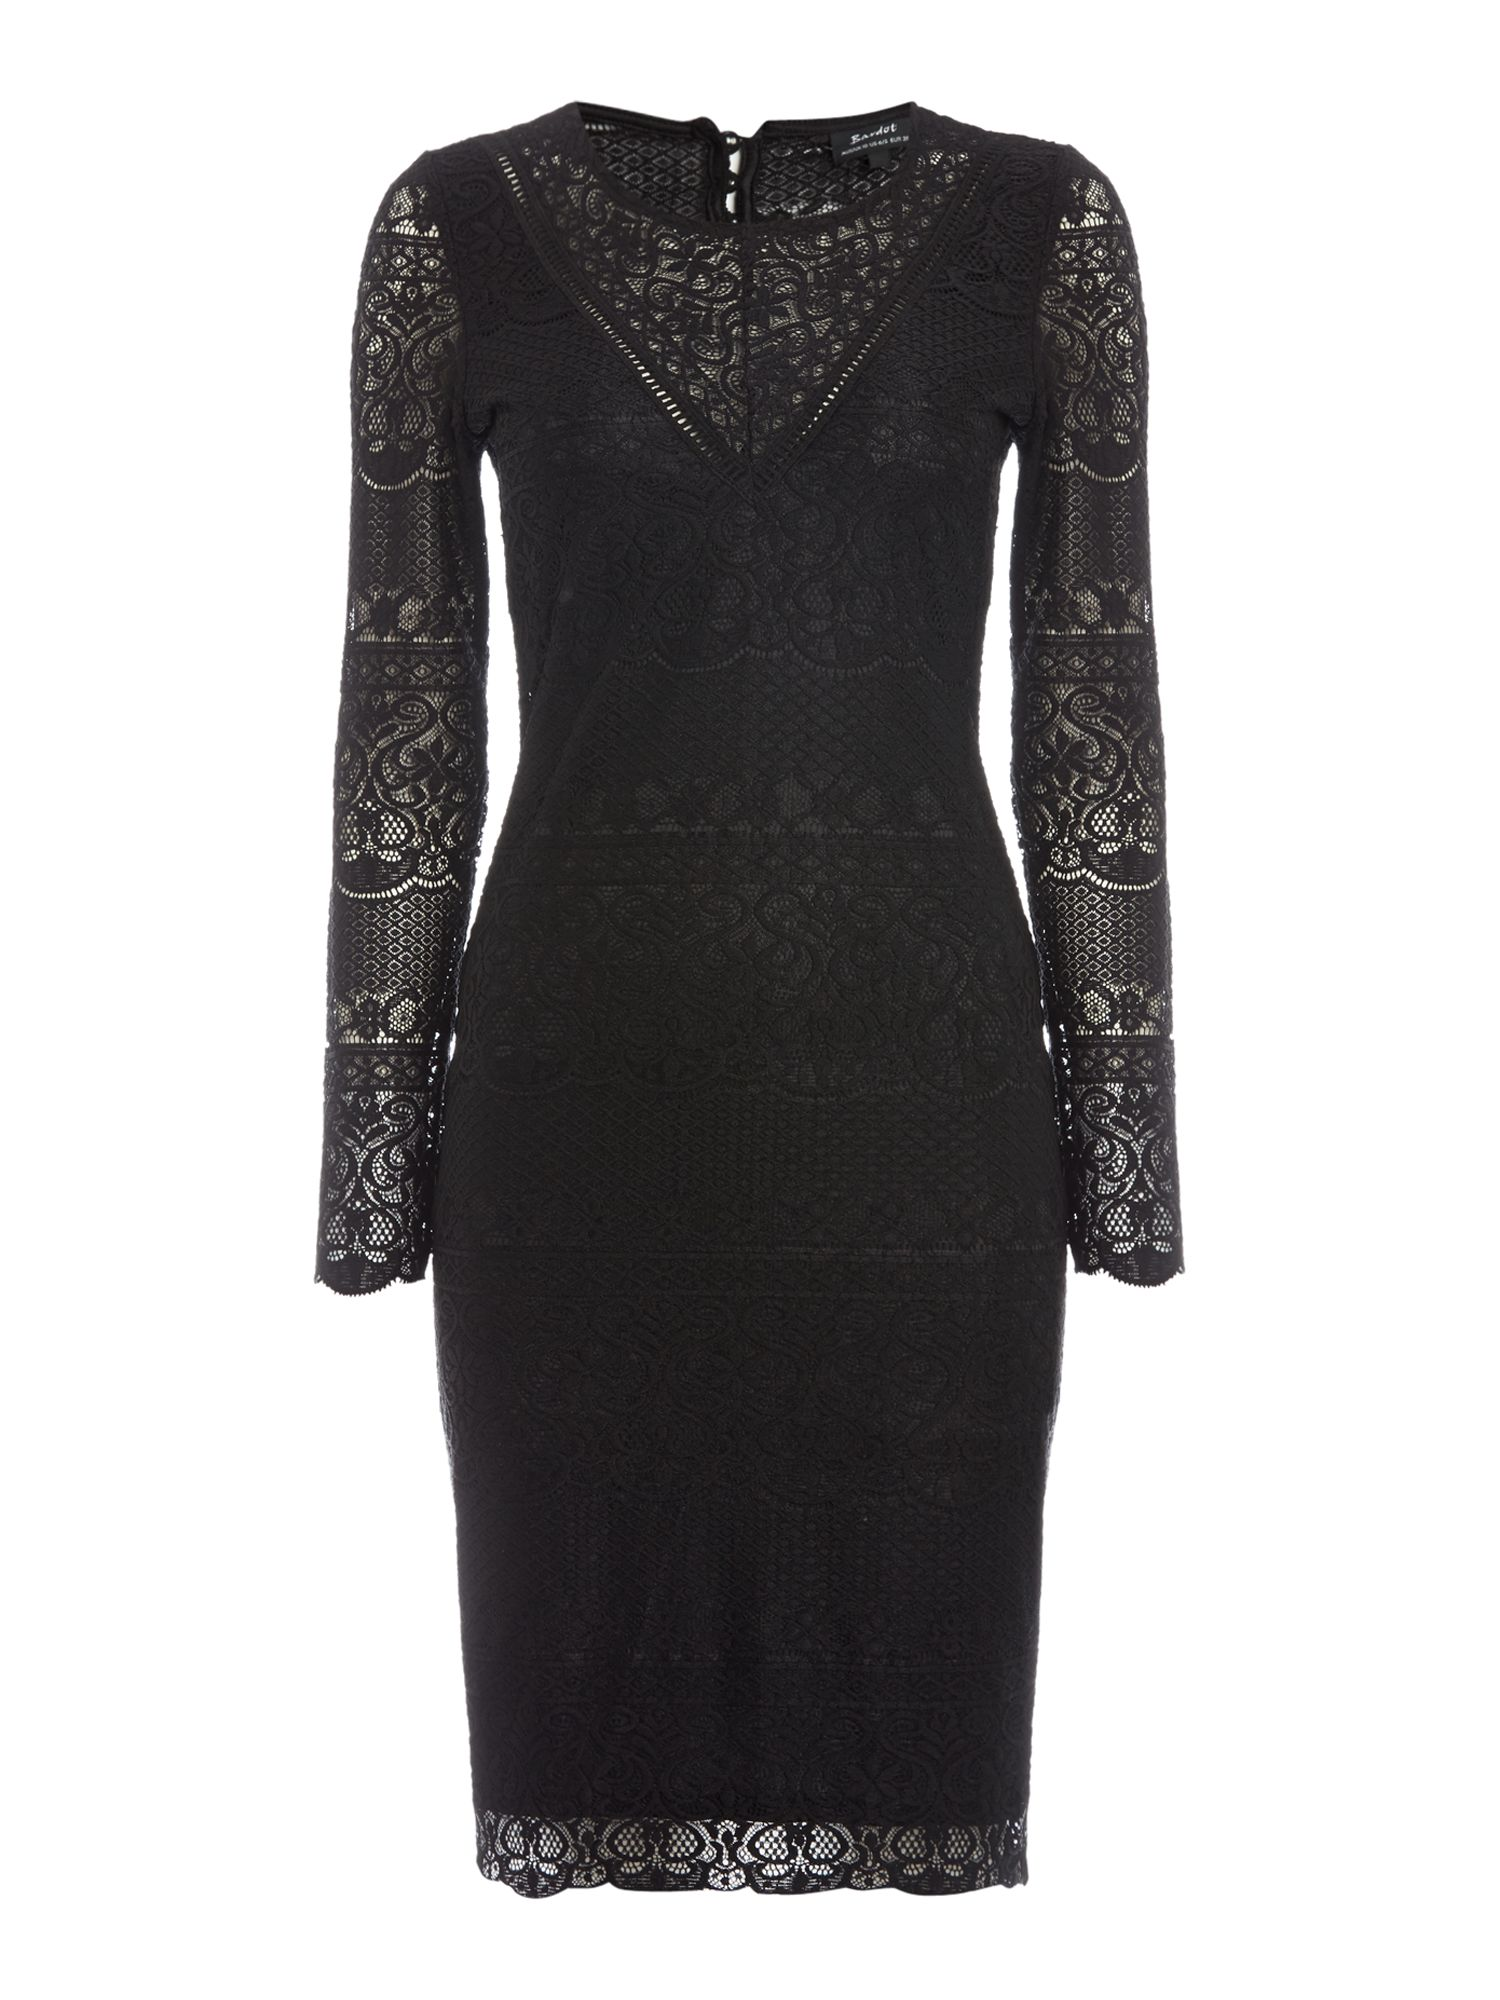 Bardot Long Sleeved Lace Applique Bodycon Dress, Black